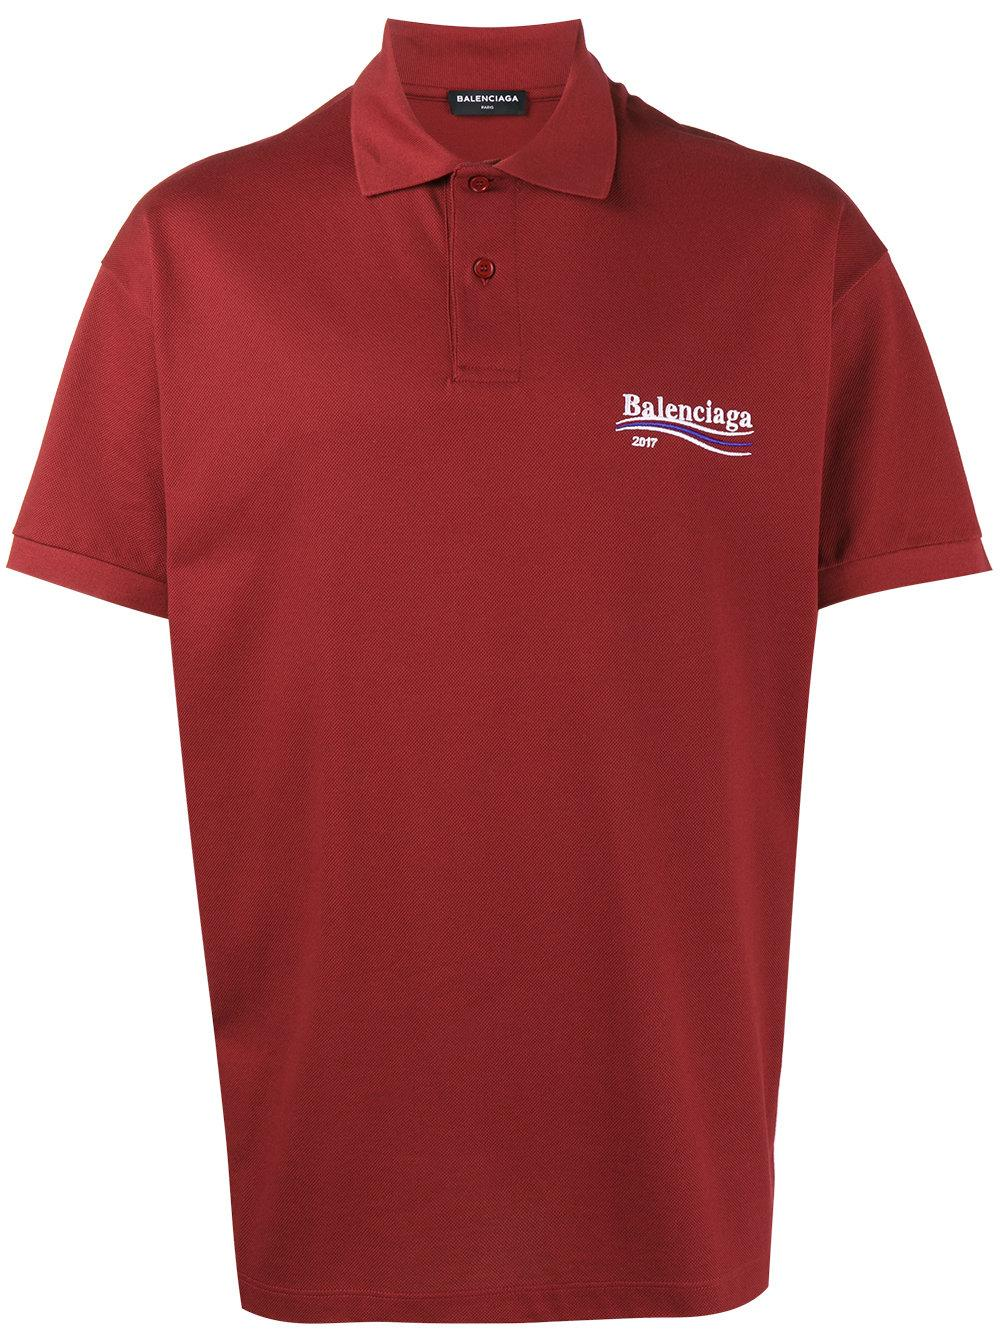 Lyst balenciaga oversized embroidered polo shirt in red for Balenciaga t shirt red